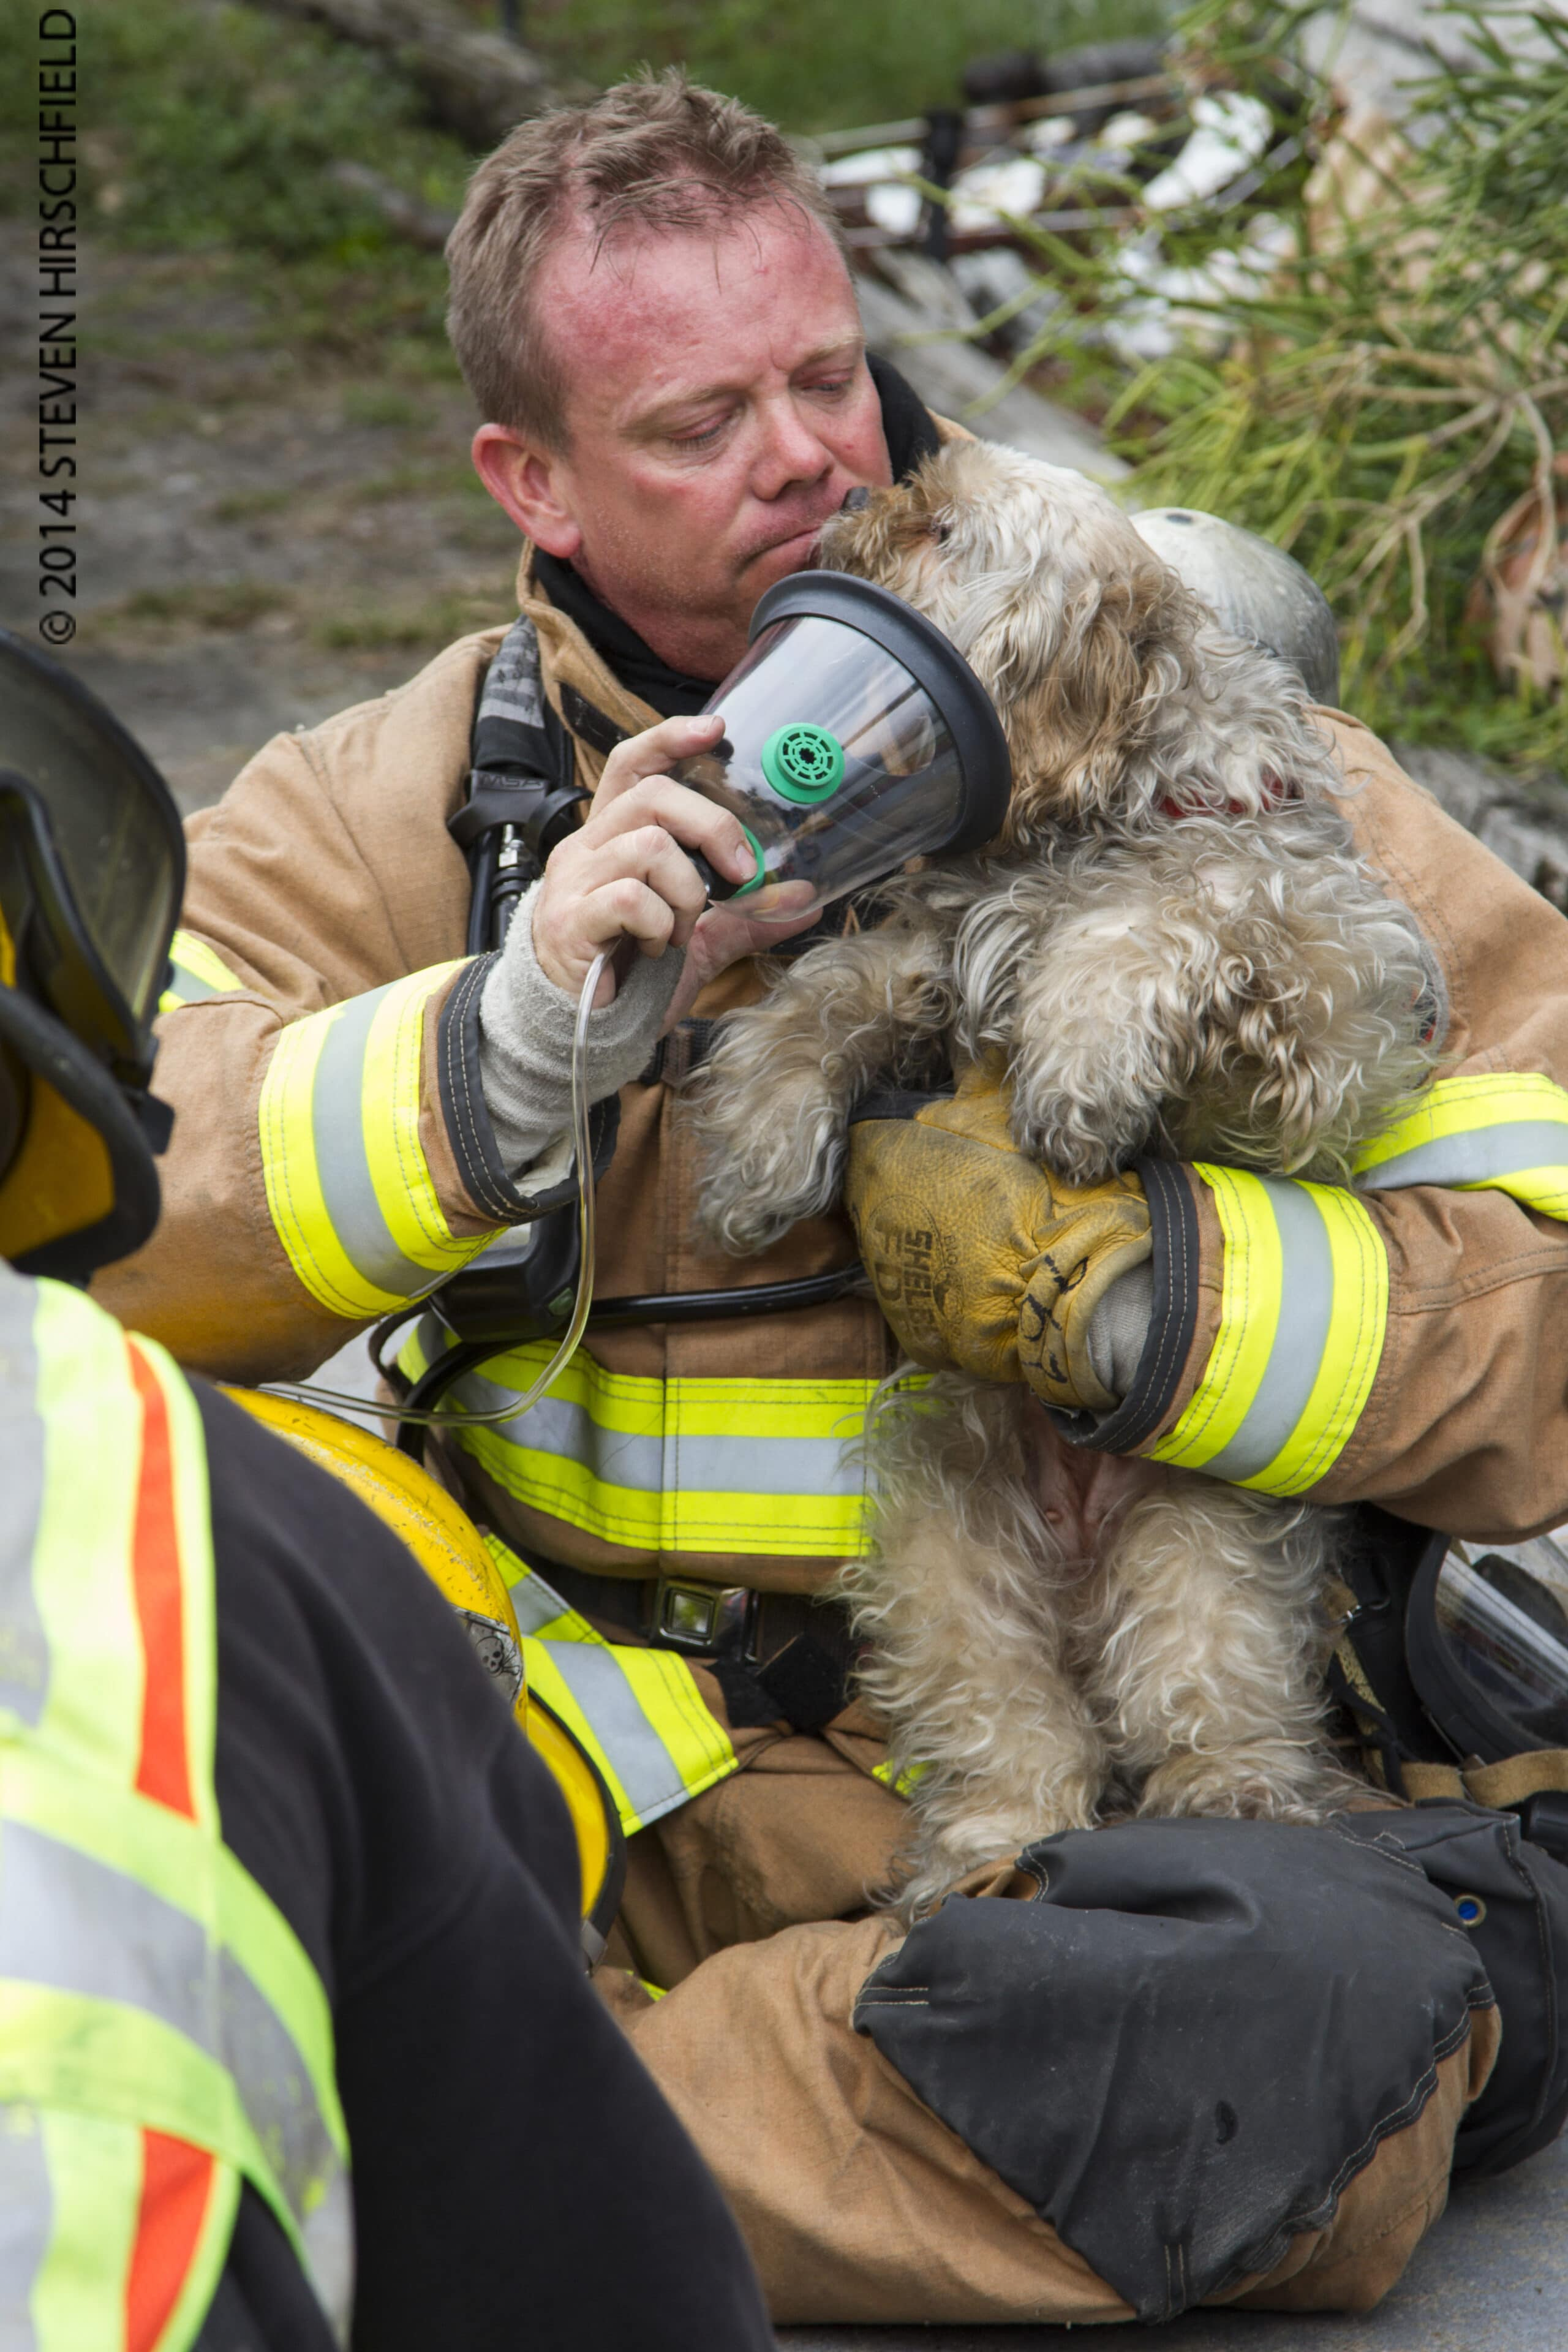 Firefighters Rescue Unresponsive Animals from Structure Fire in Largo